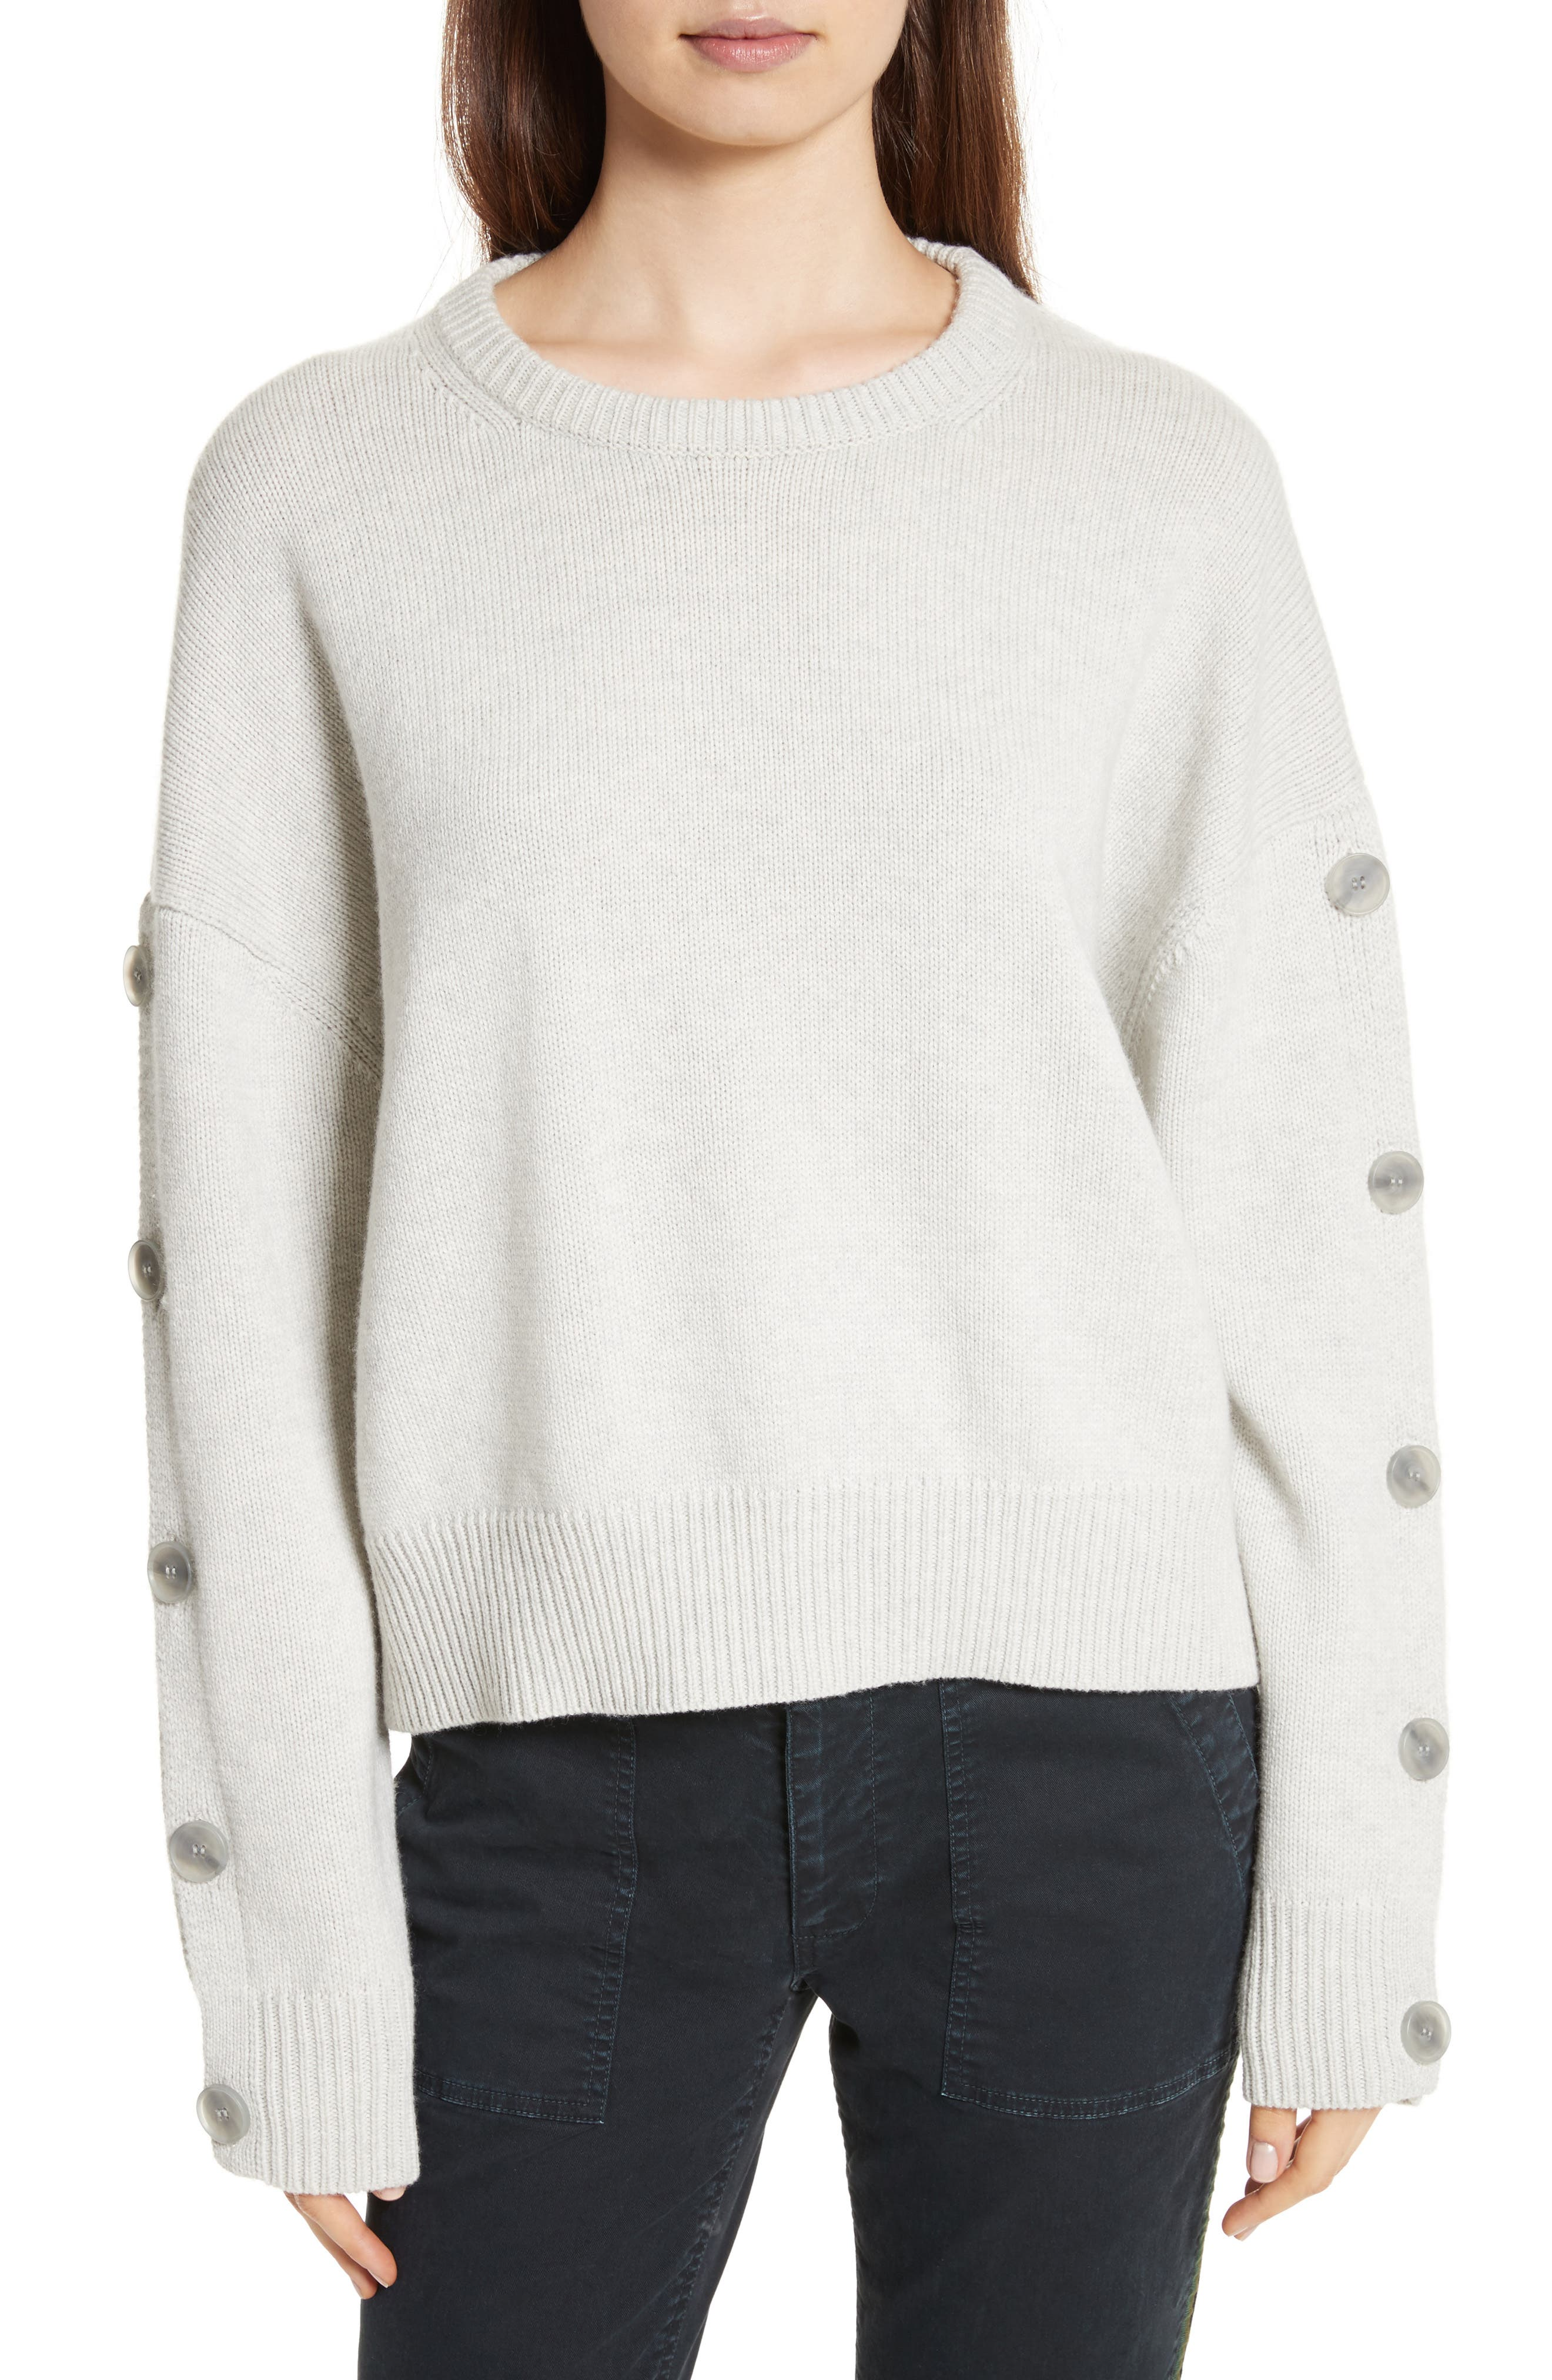 Nili Lotan Martina Wool & Cashmere Sweater